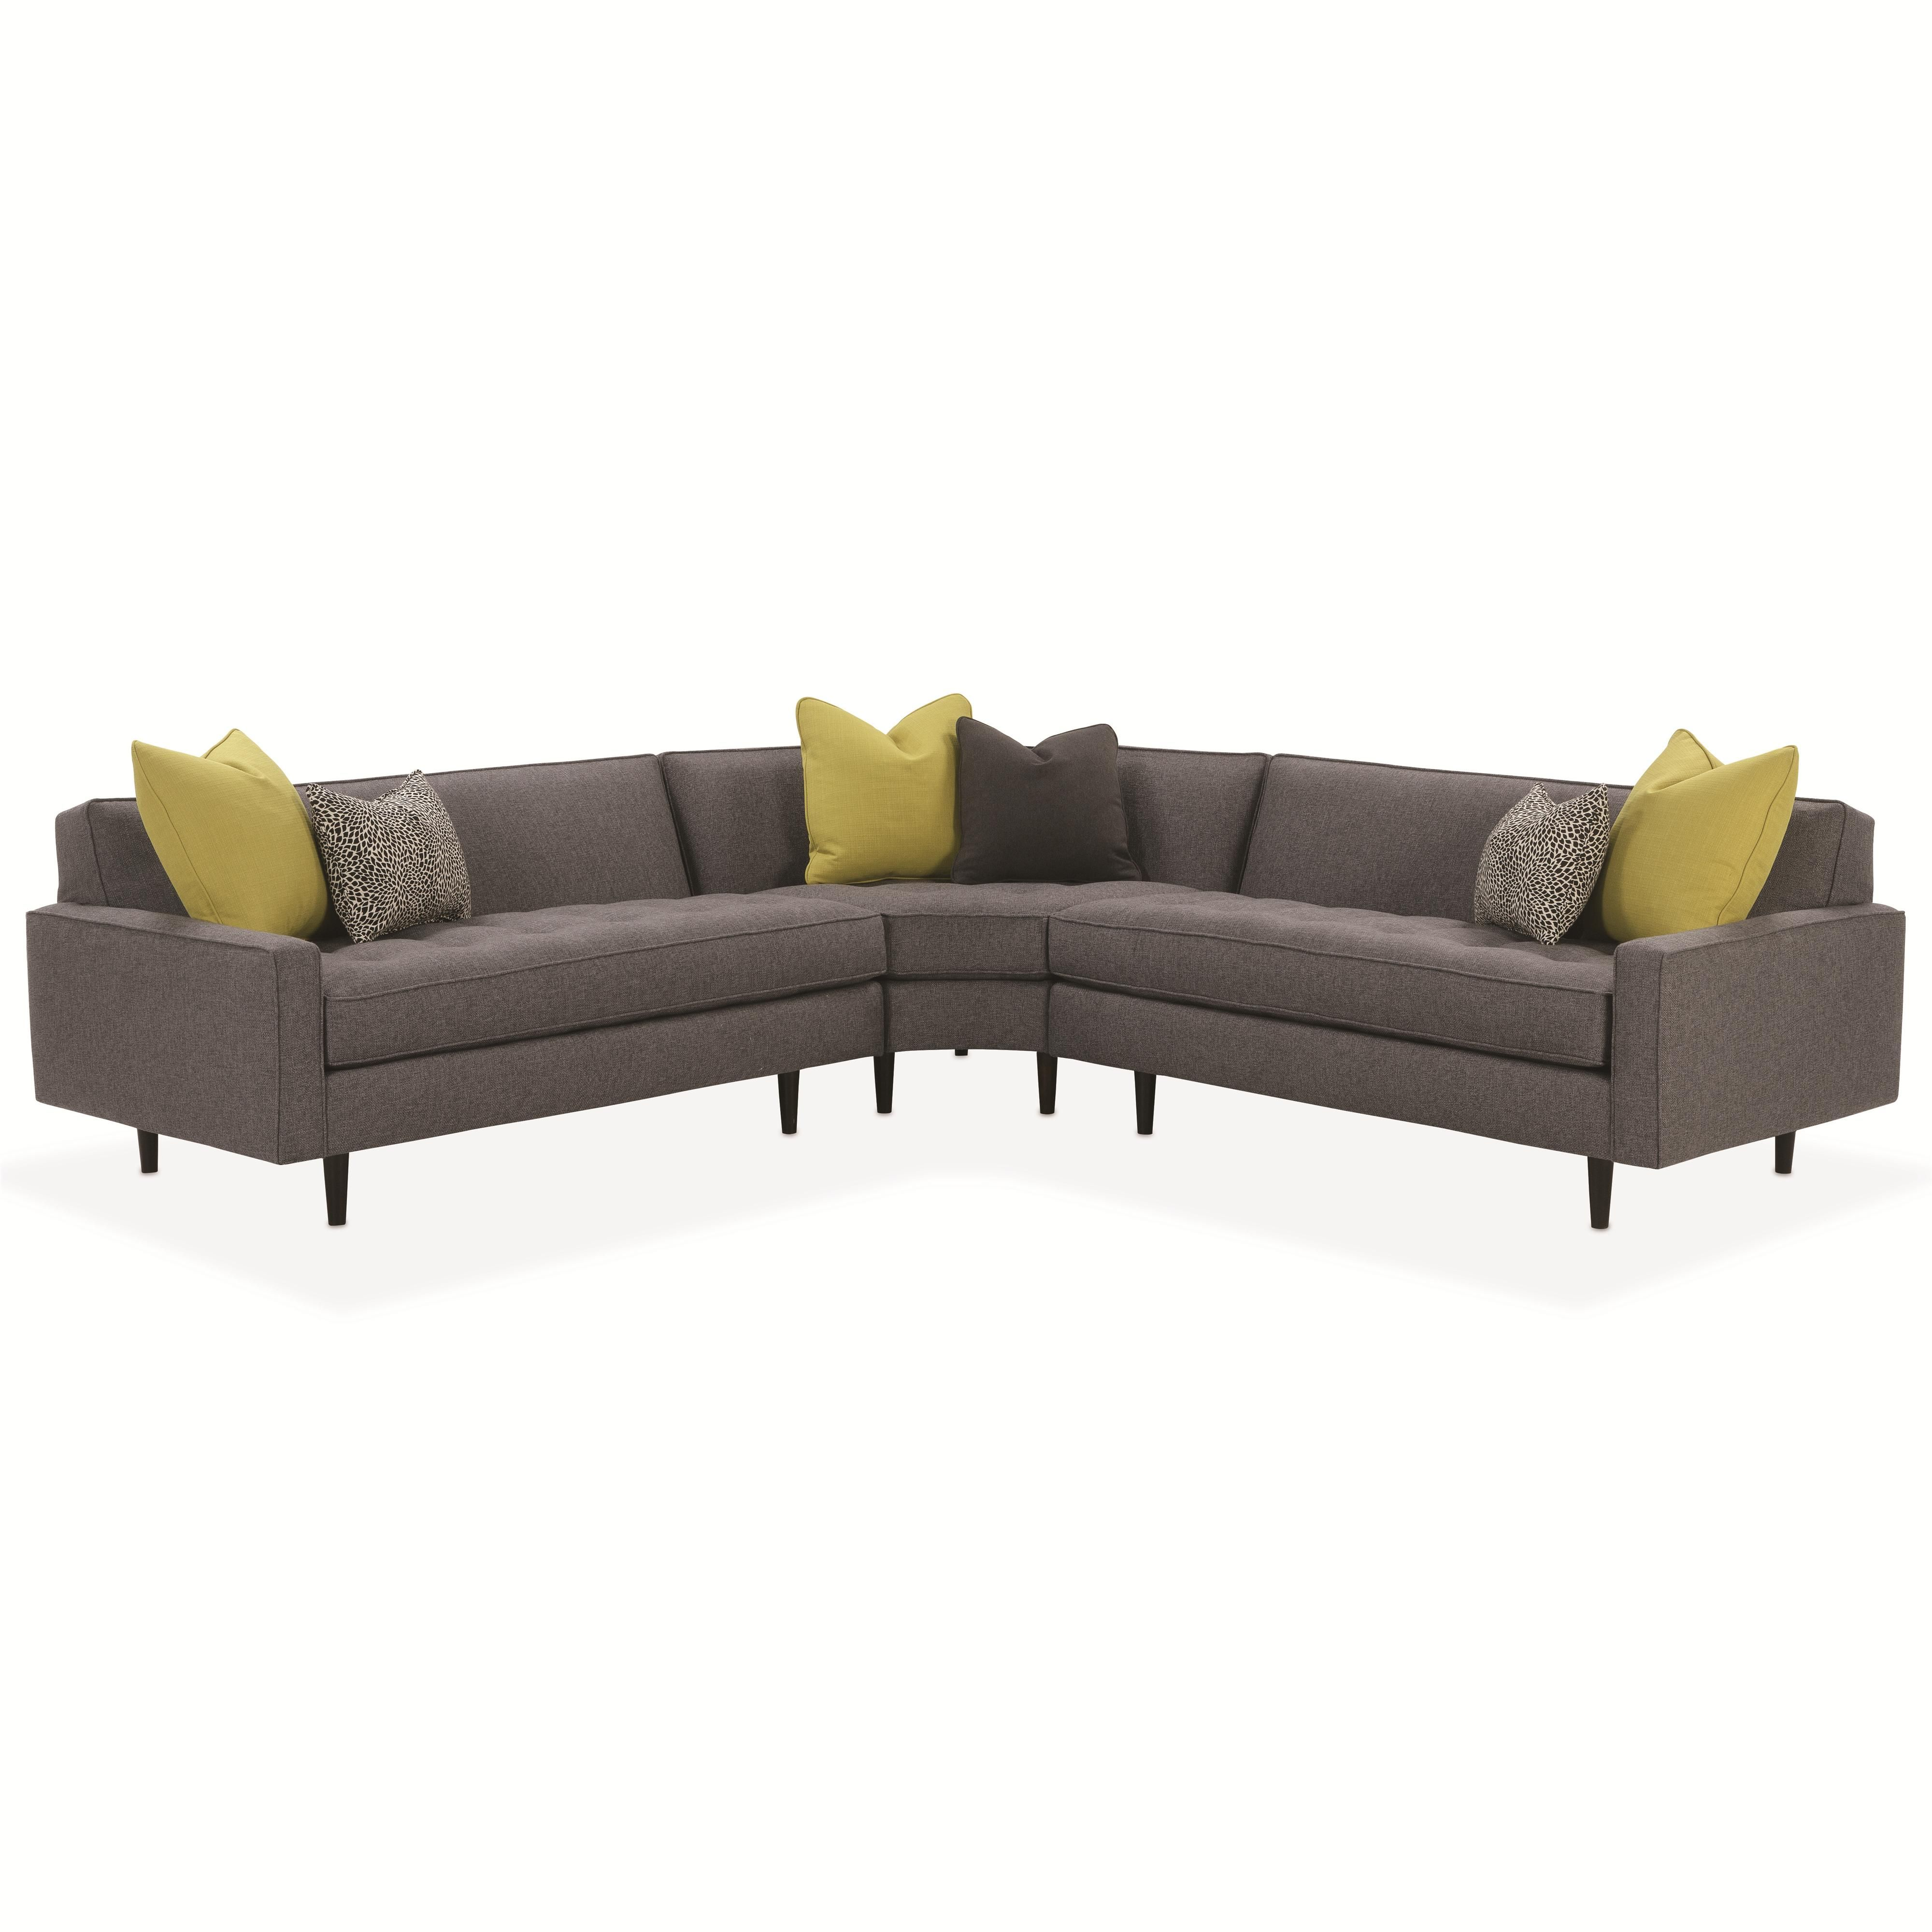 Sofa Sectionals With Bed Rowe Brady Contemporary Sectional Sofa With Track Arms Becker